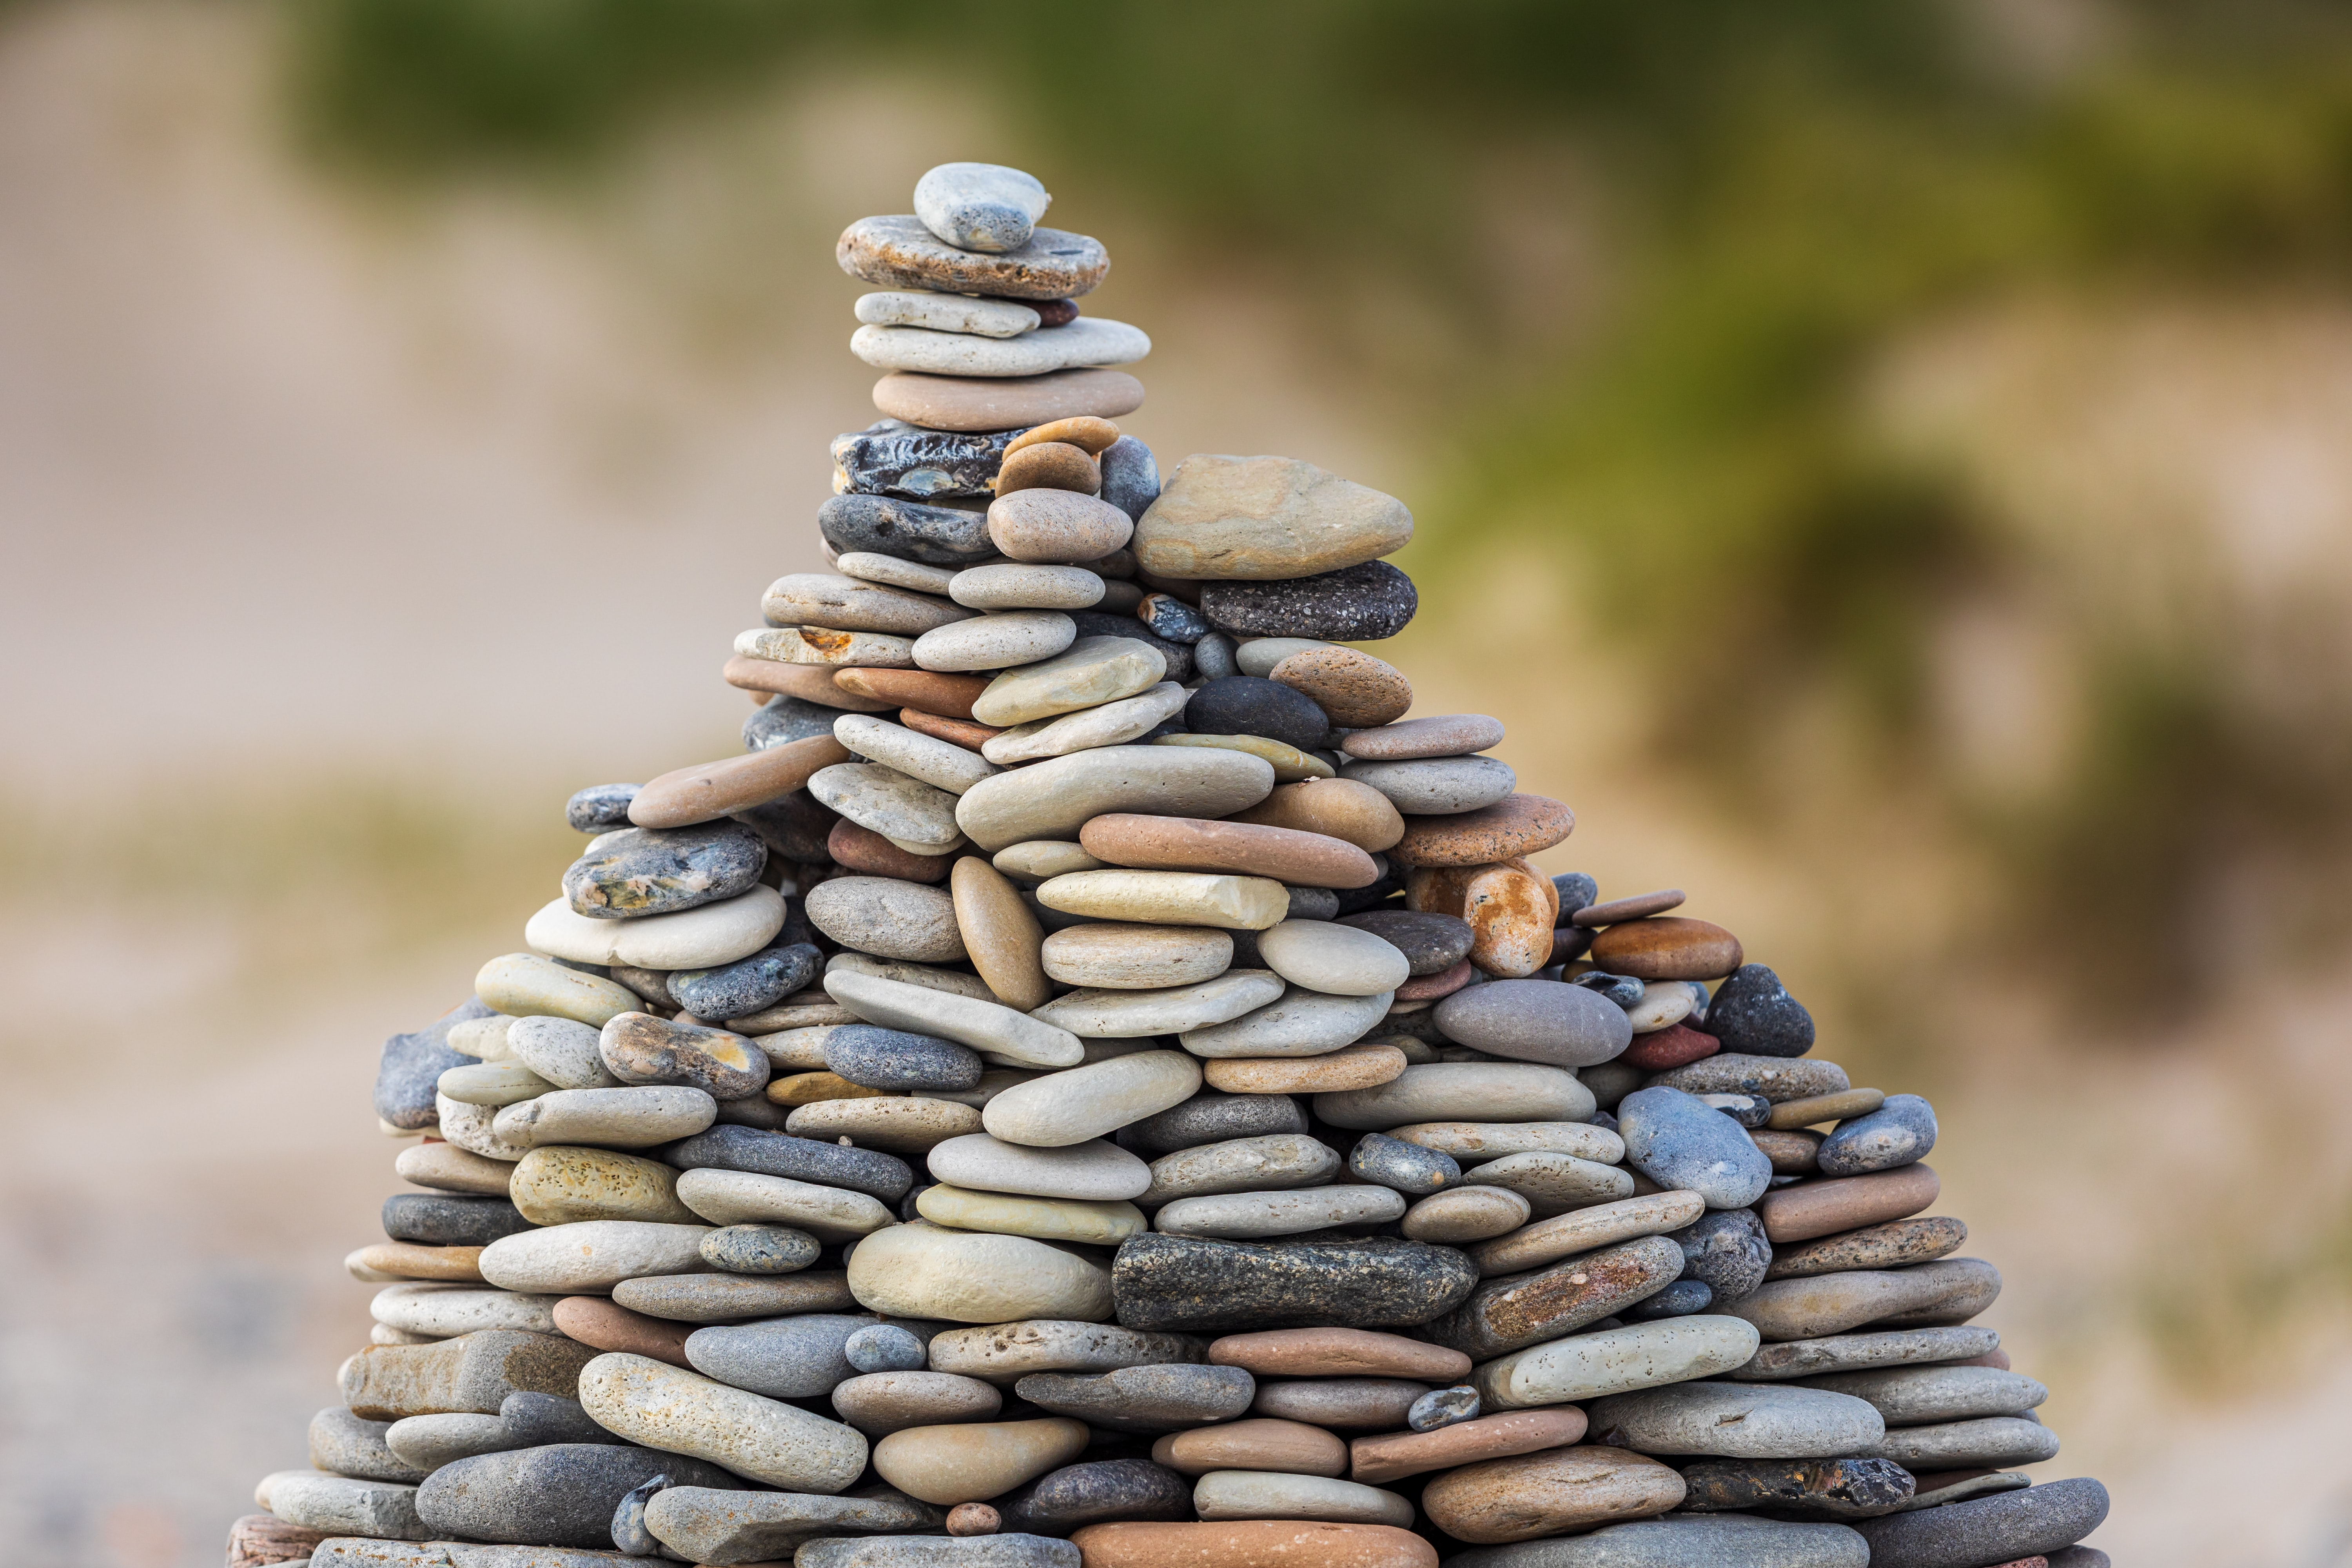 Pile of stones balancing each other, showing the benefits of Trust